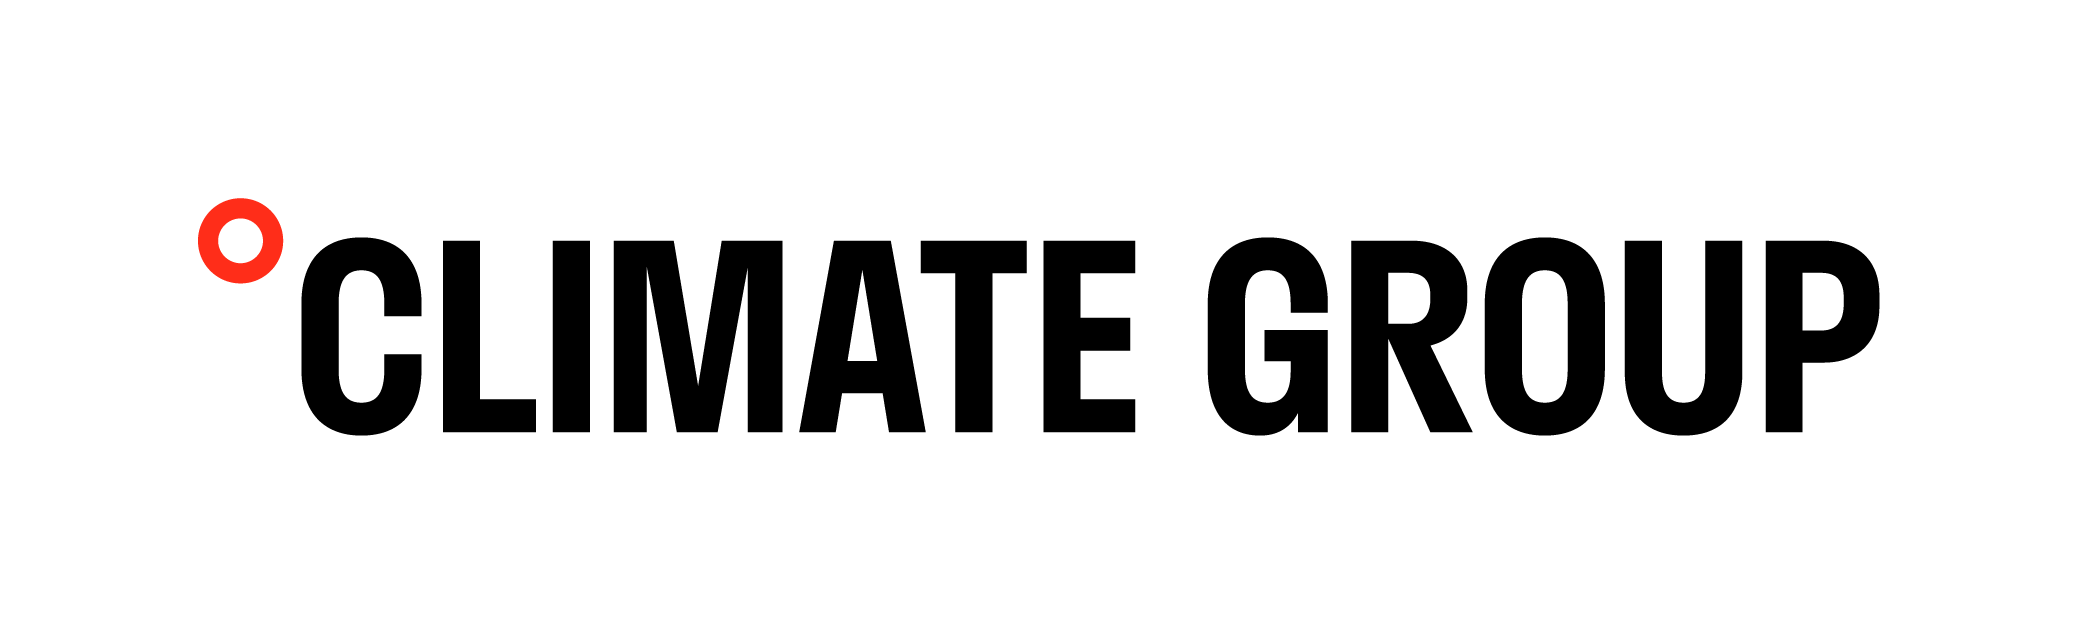 TCG-Logos-RGB_Climate group - Full Logo - Black